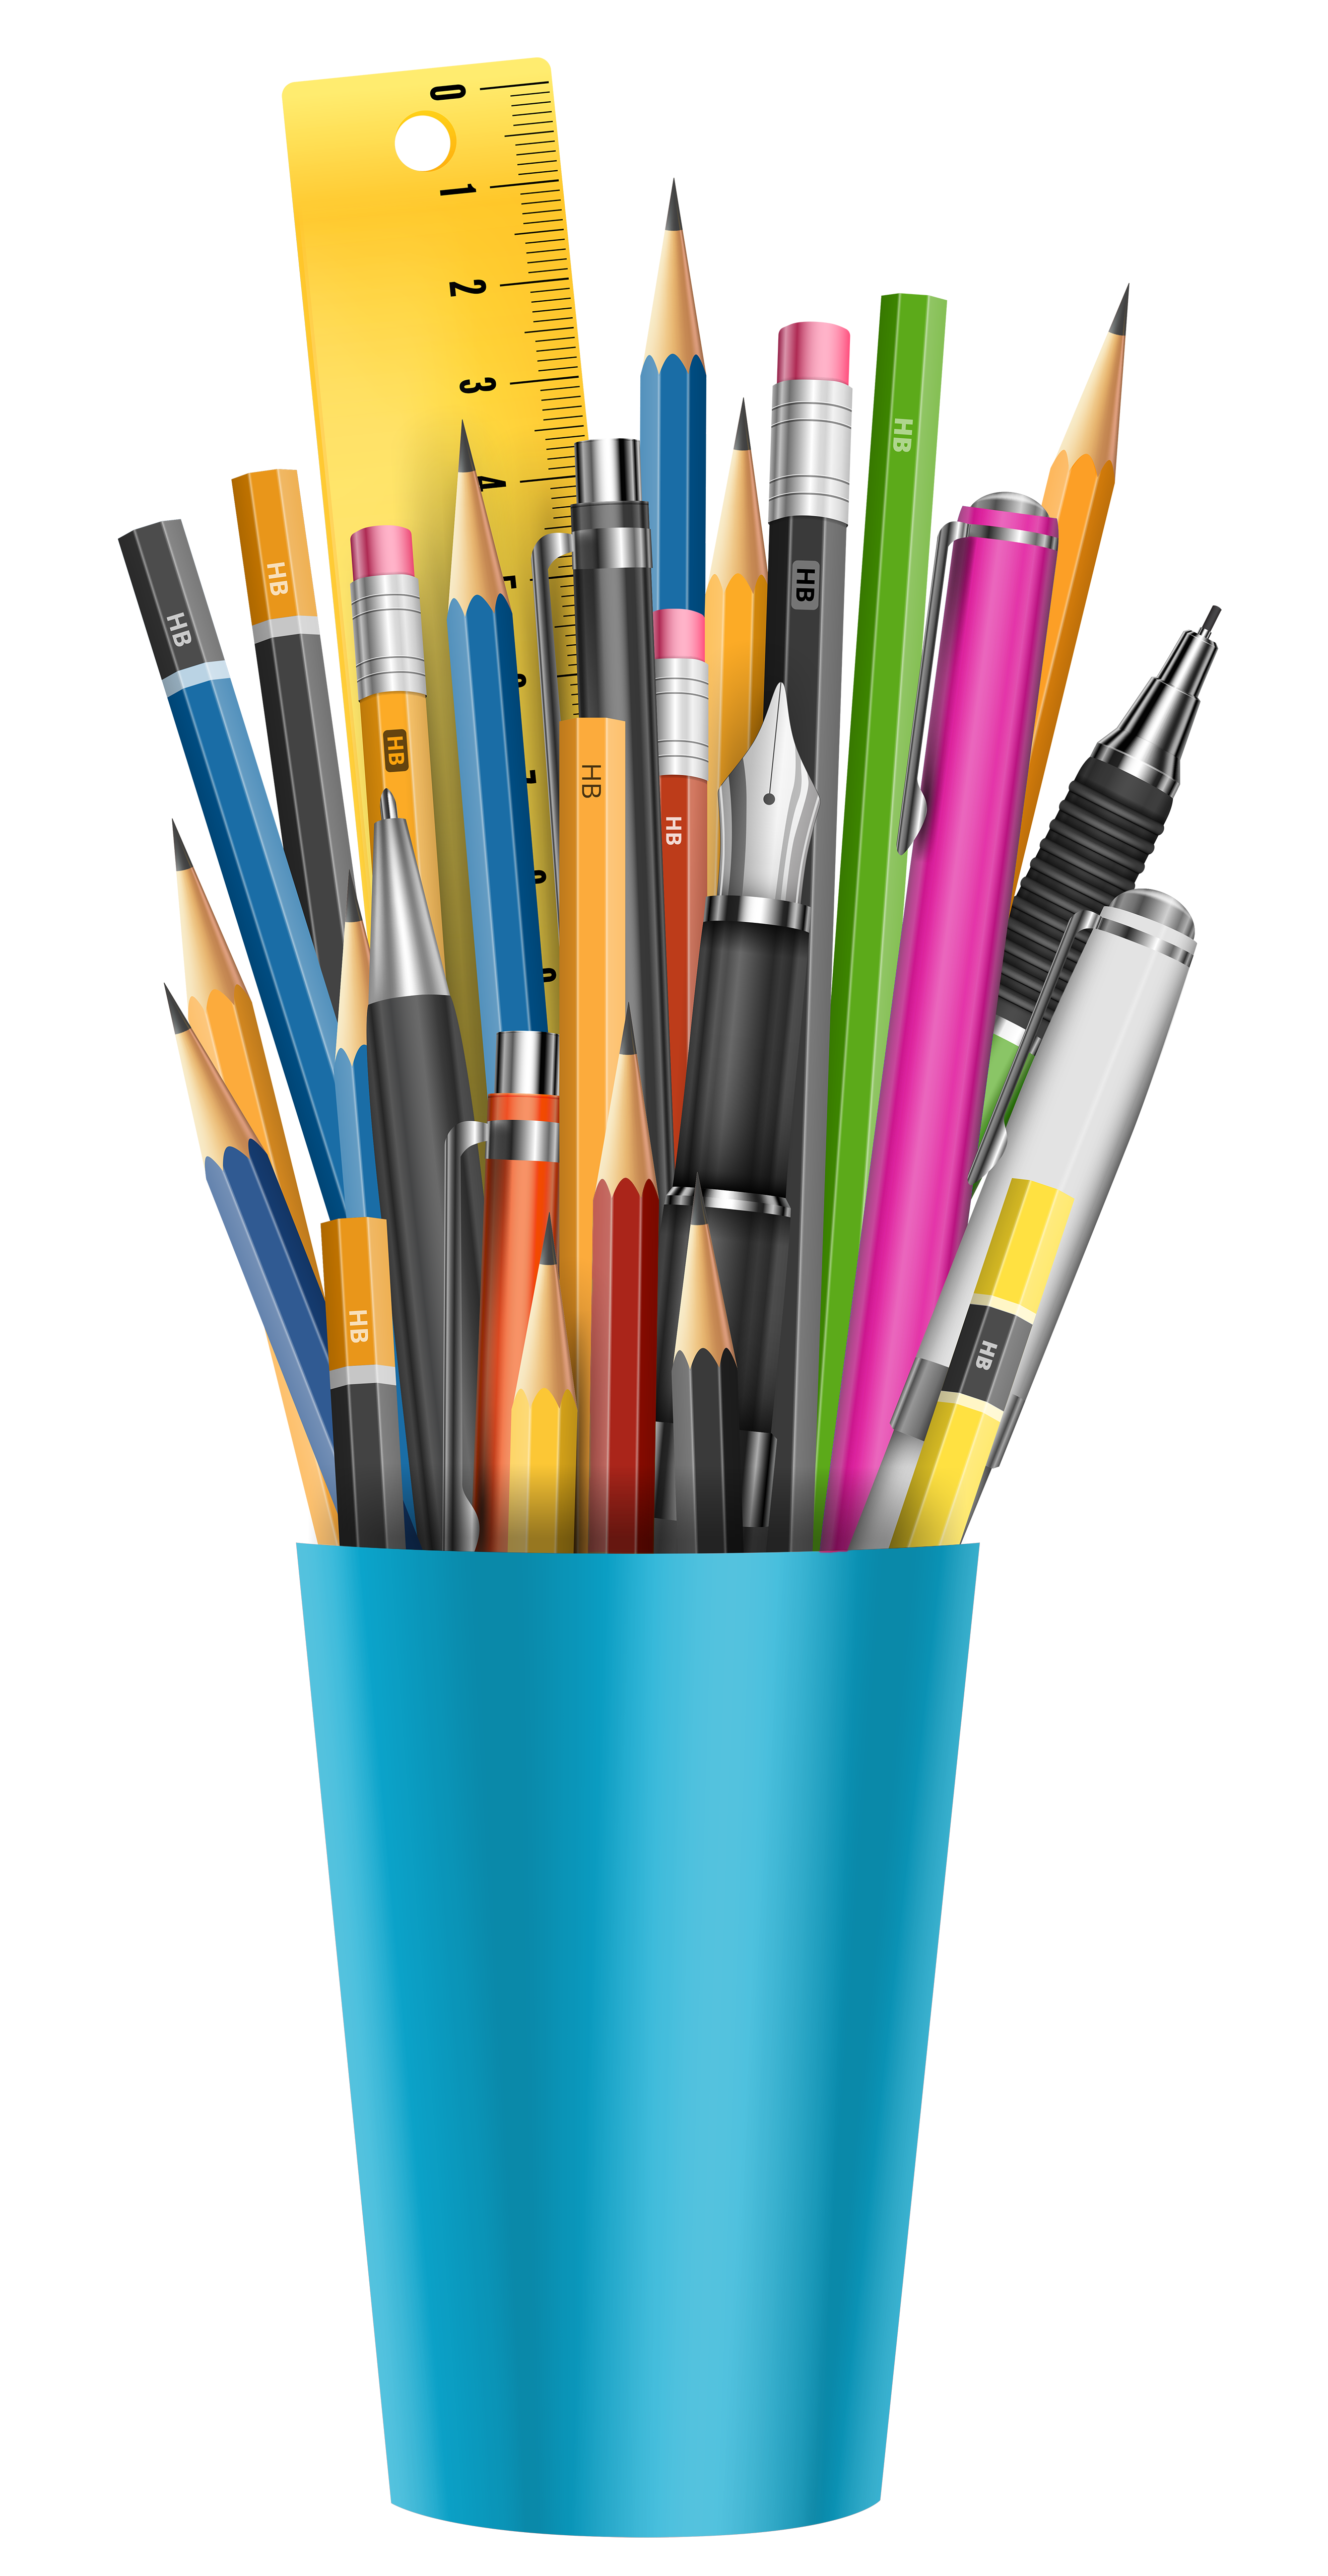 Cup transparent pens. Pencil png clipart picture